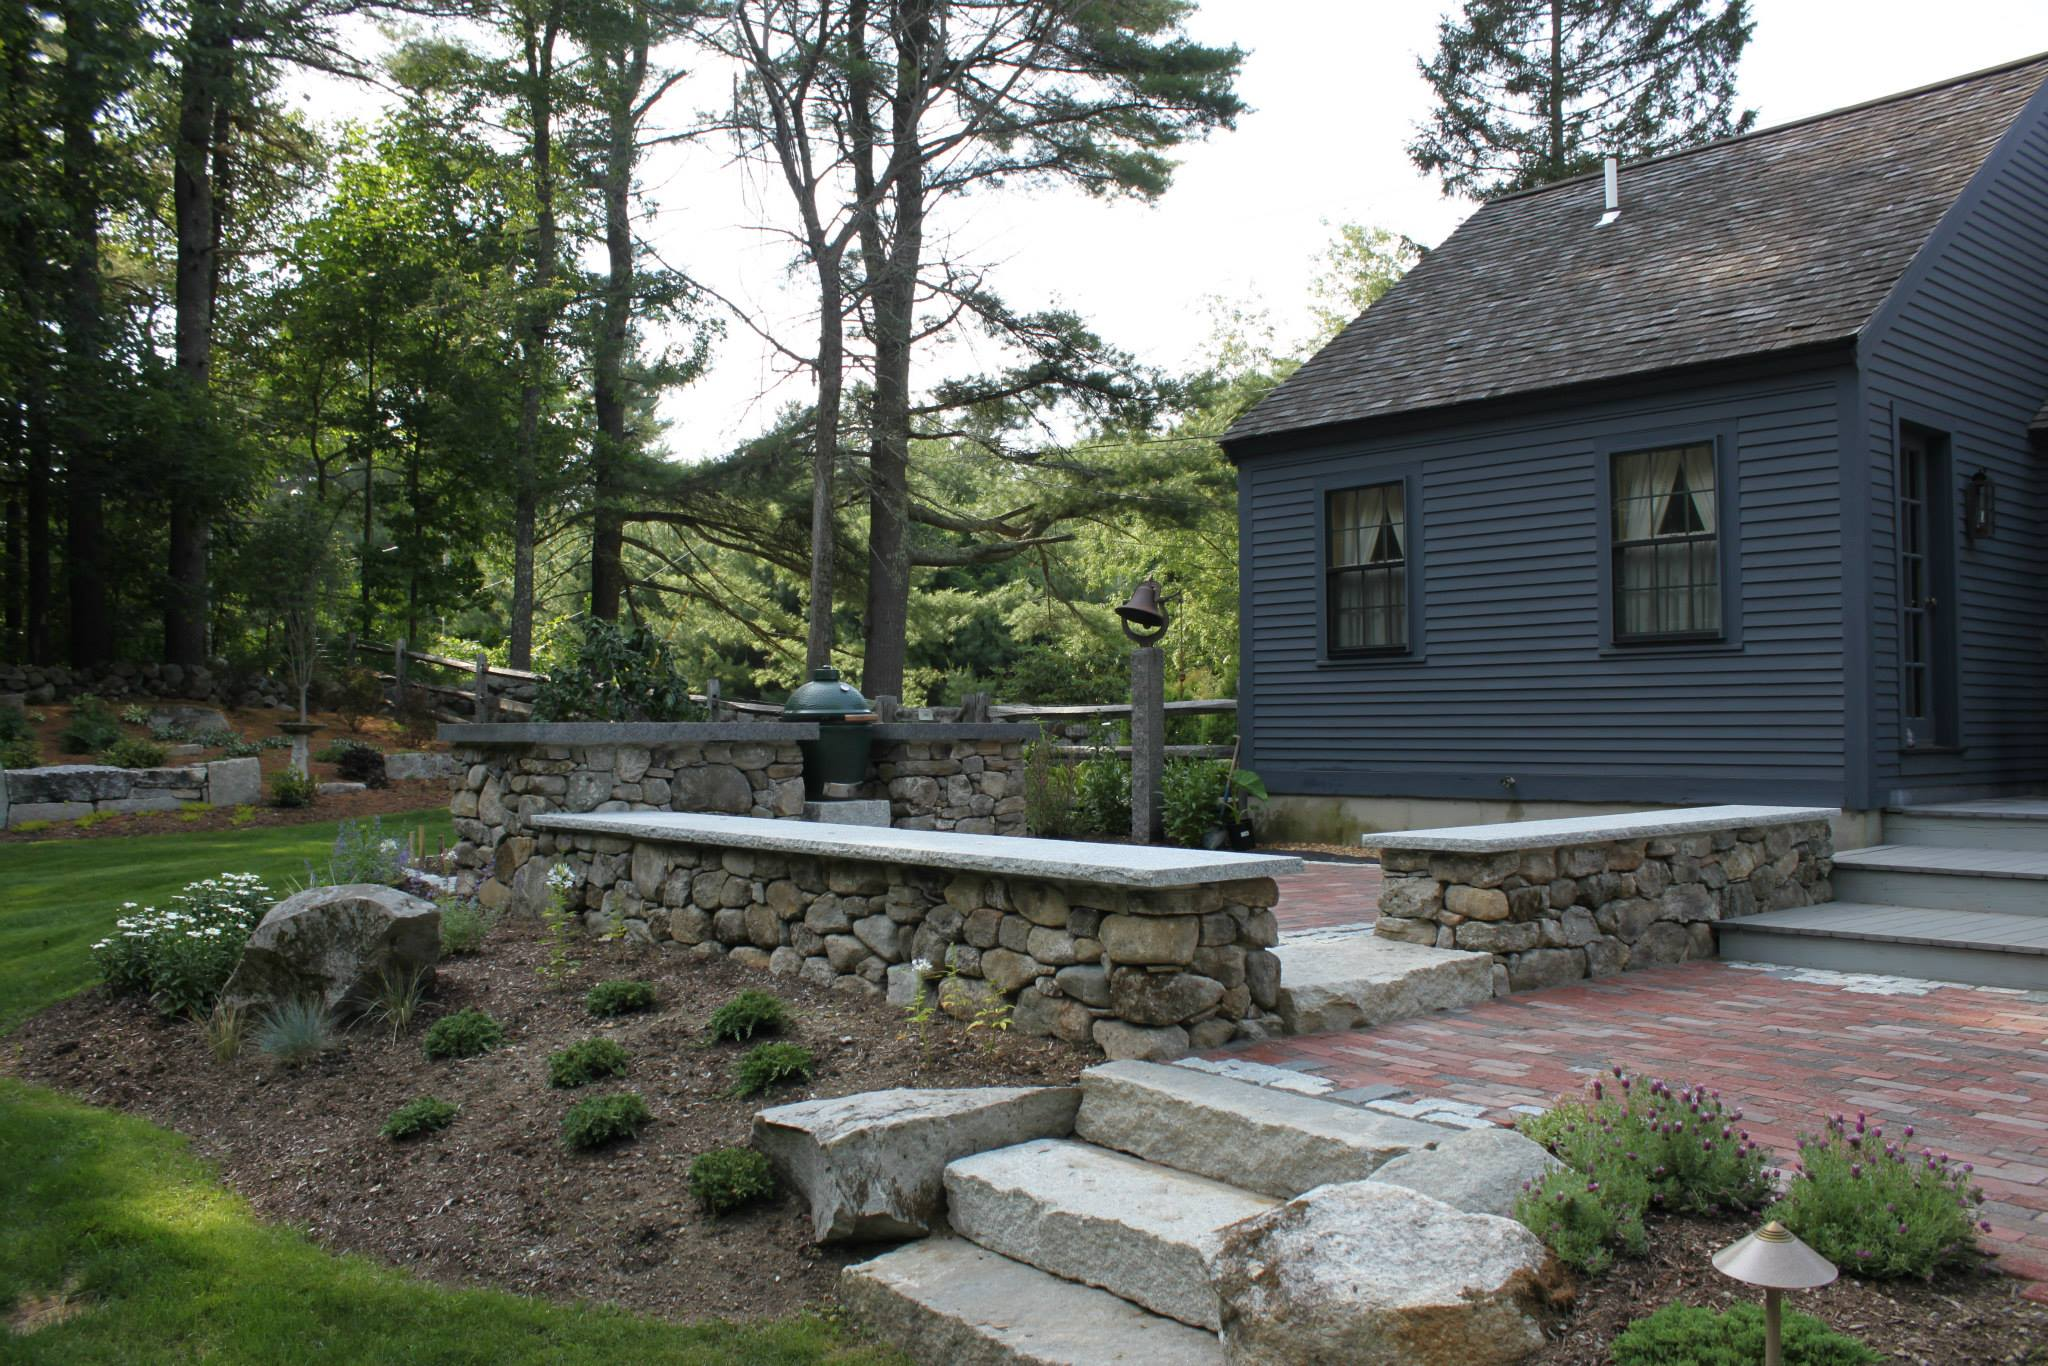 Top landscaping design company inLaconia, NH